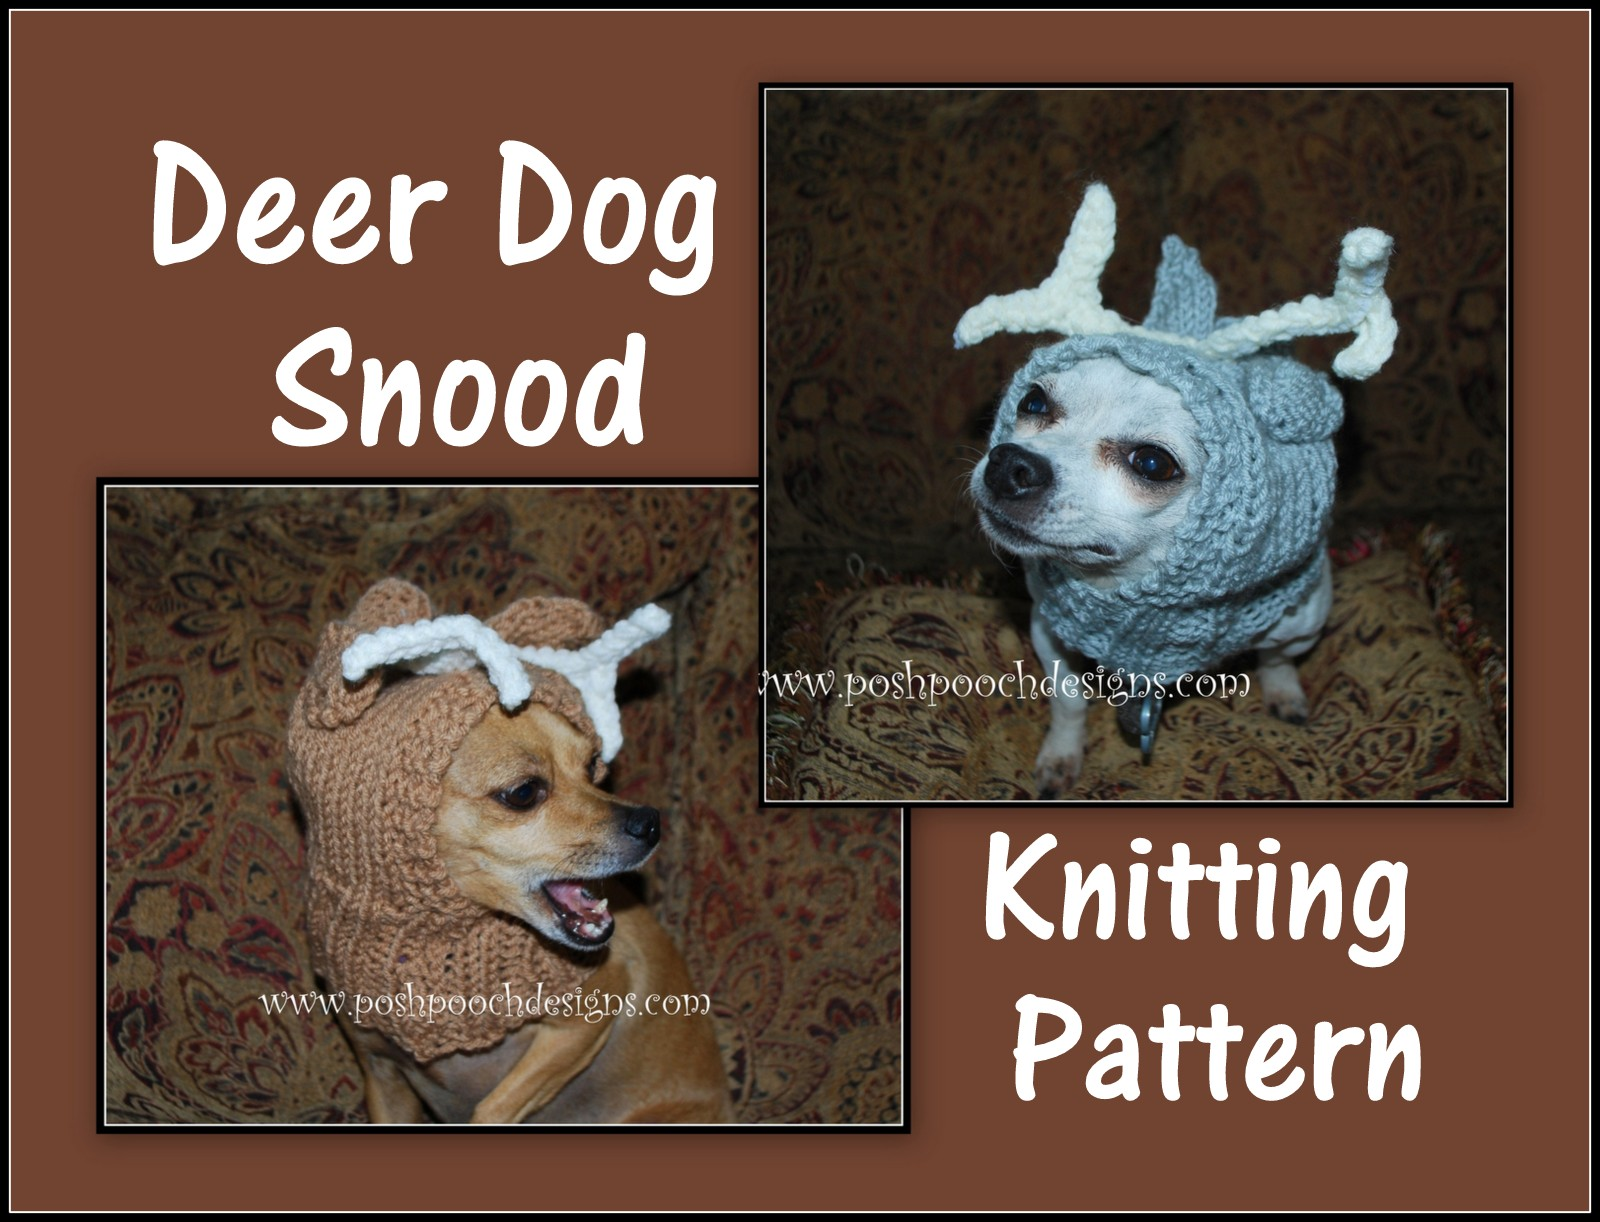 Knitting Pattern Dog Snood : Posh Pooch Designs Dog Clothes: New pattern Release - Deer Dog Snood Knitting...